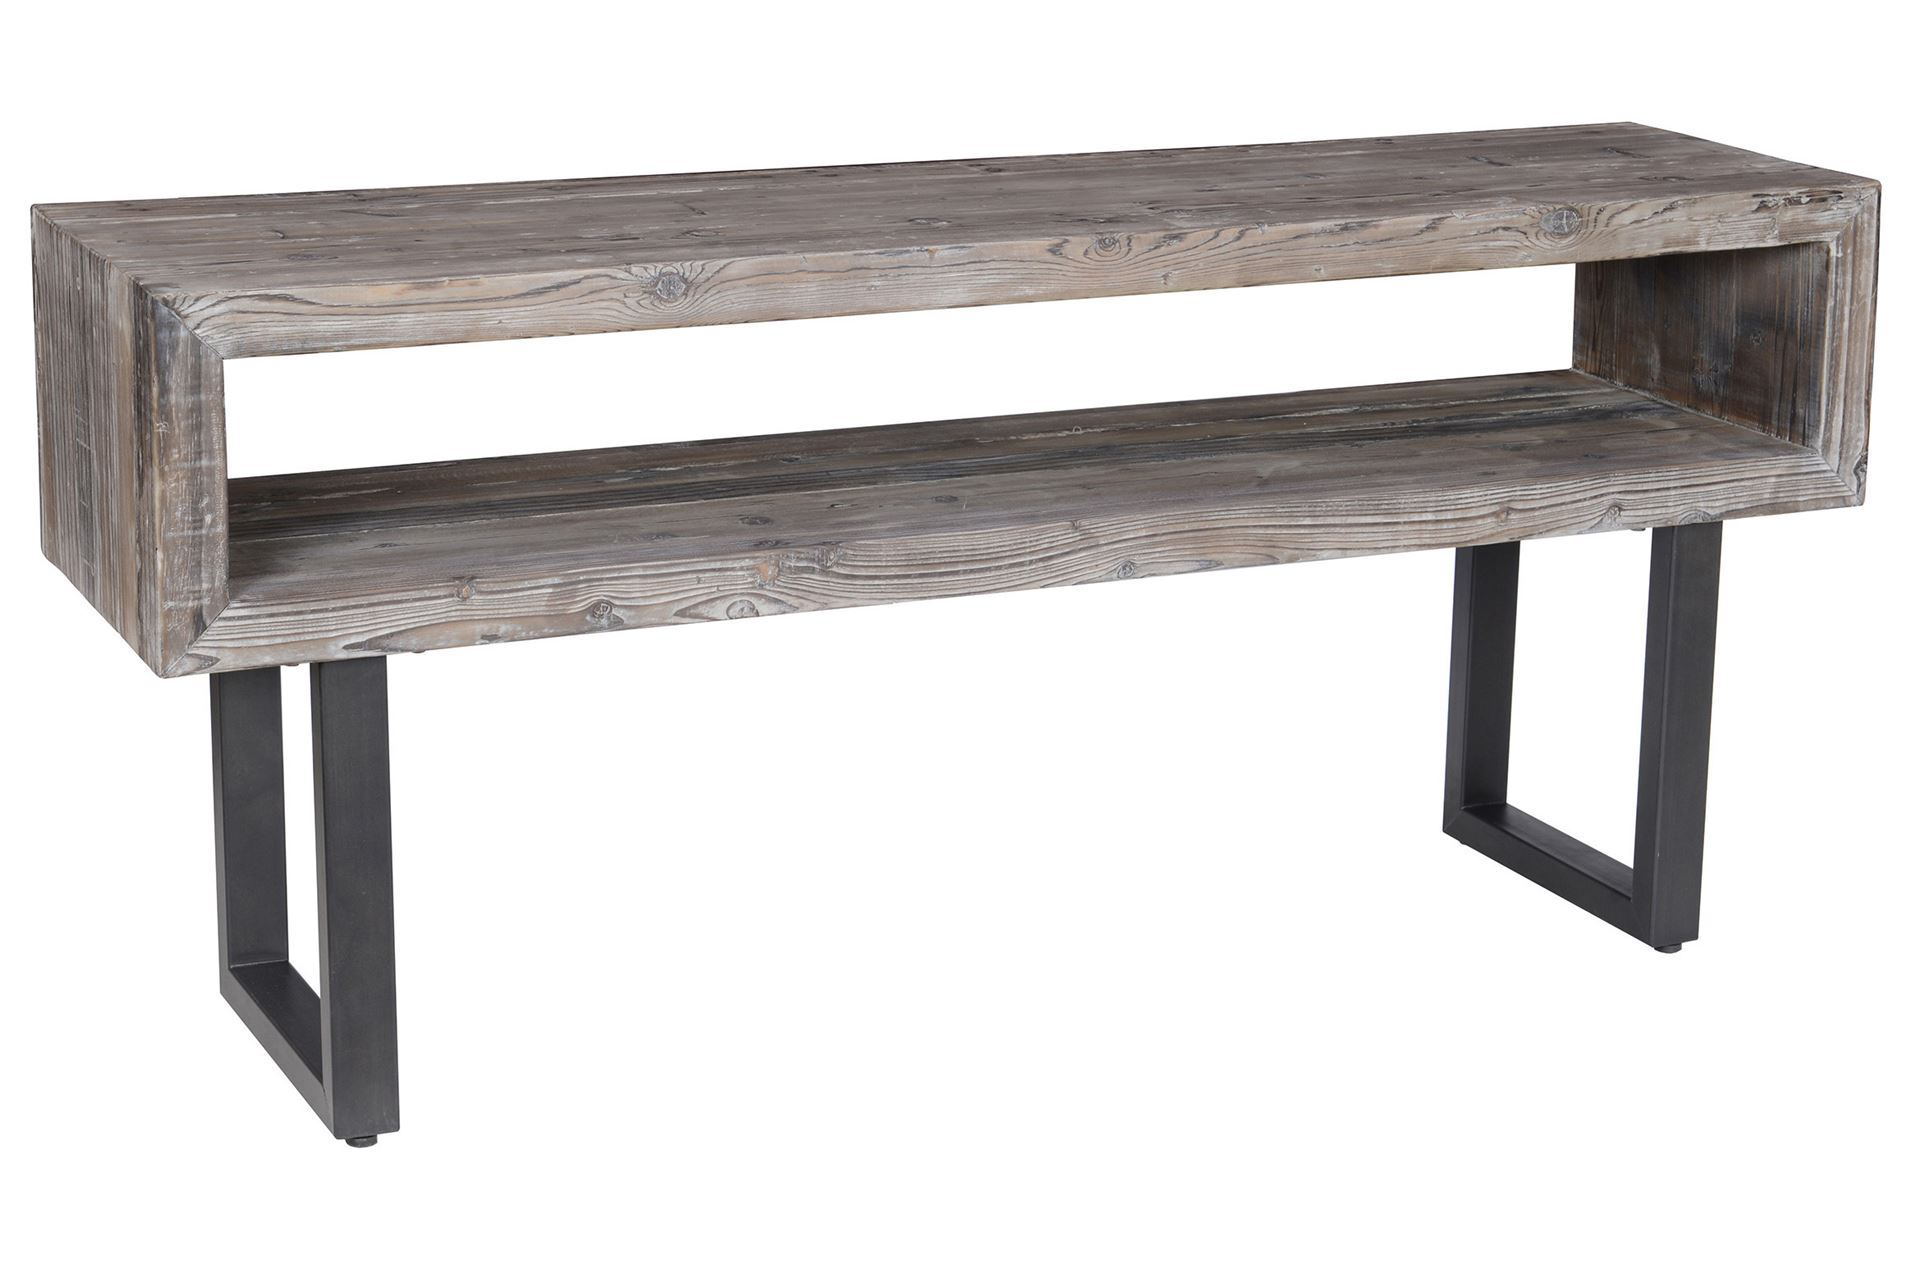 Otb bleecker grey console table living spaces Console coffee table